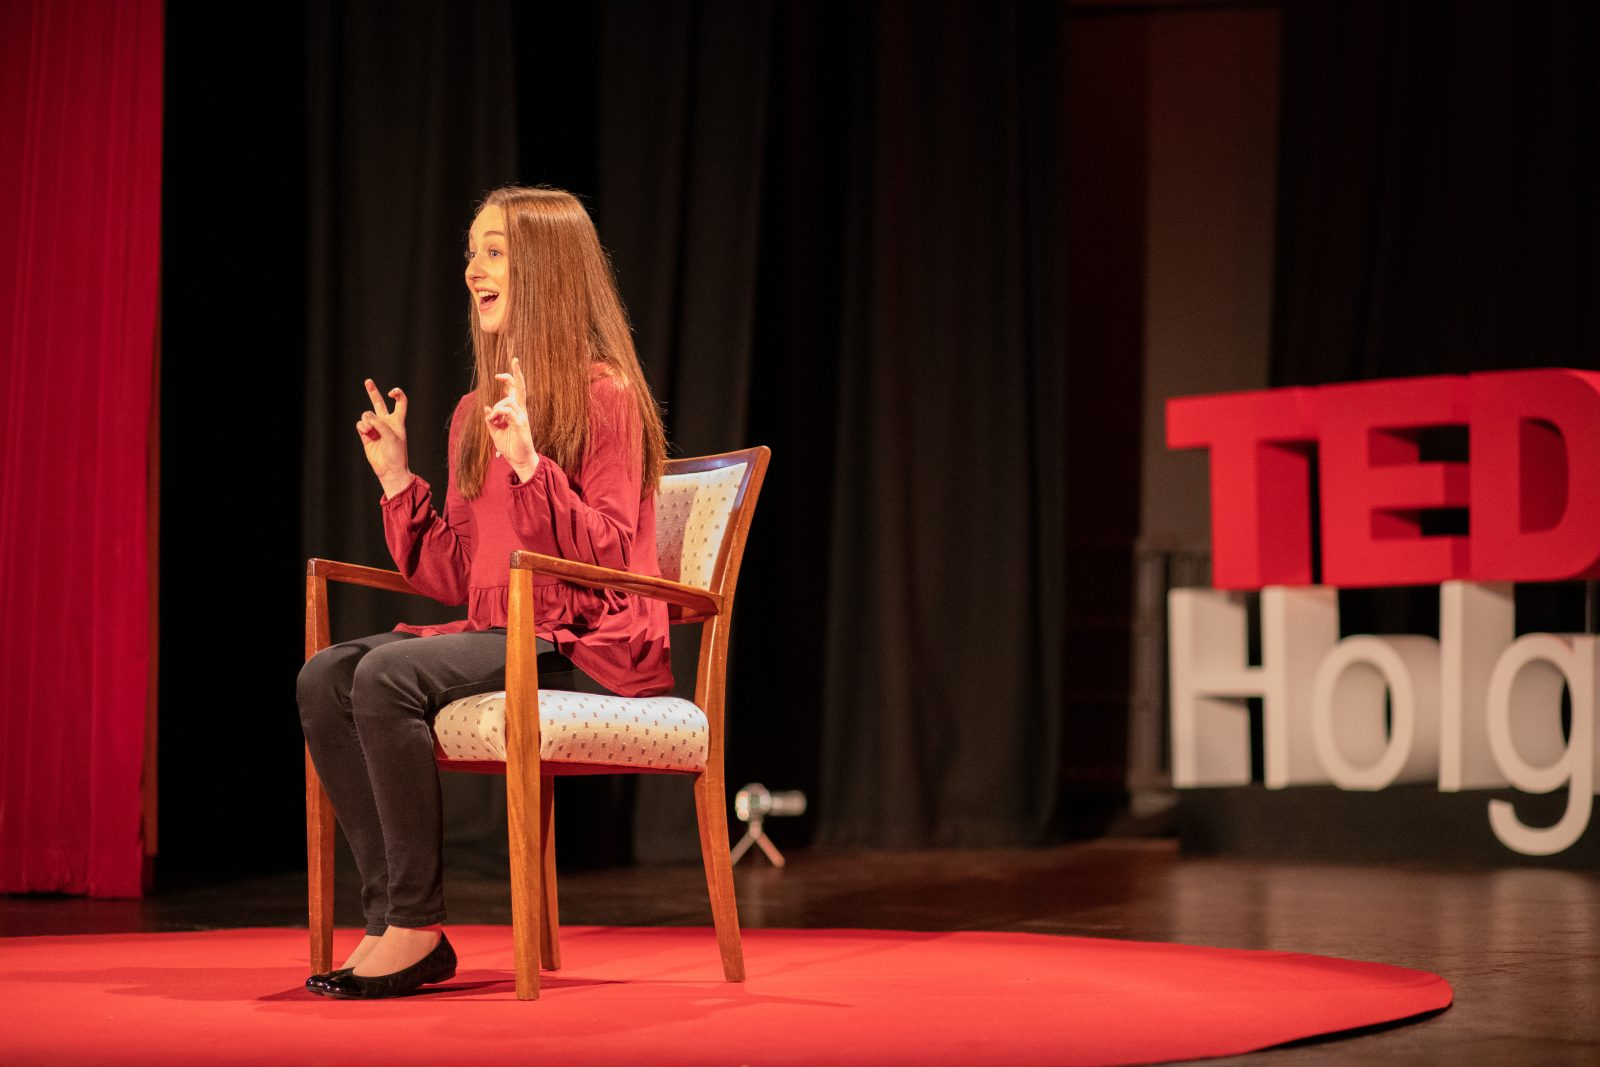 pippa on stage at tedx, sat on chair and making strange hand gesture whilst talking to audience